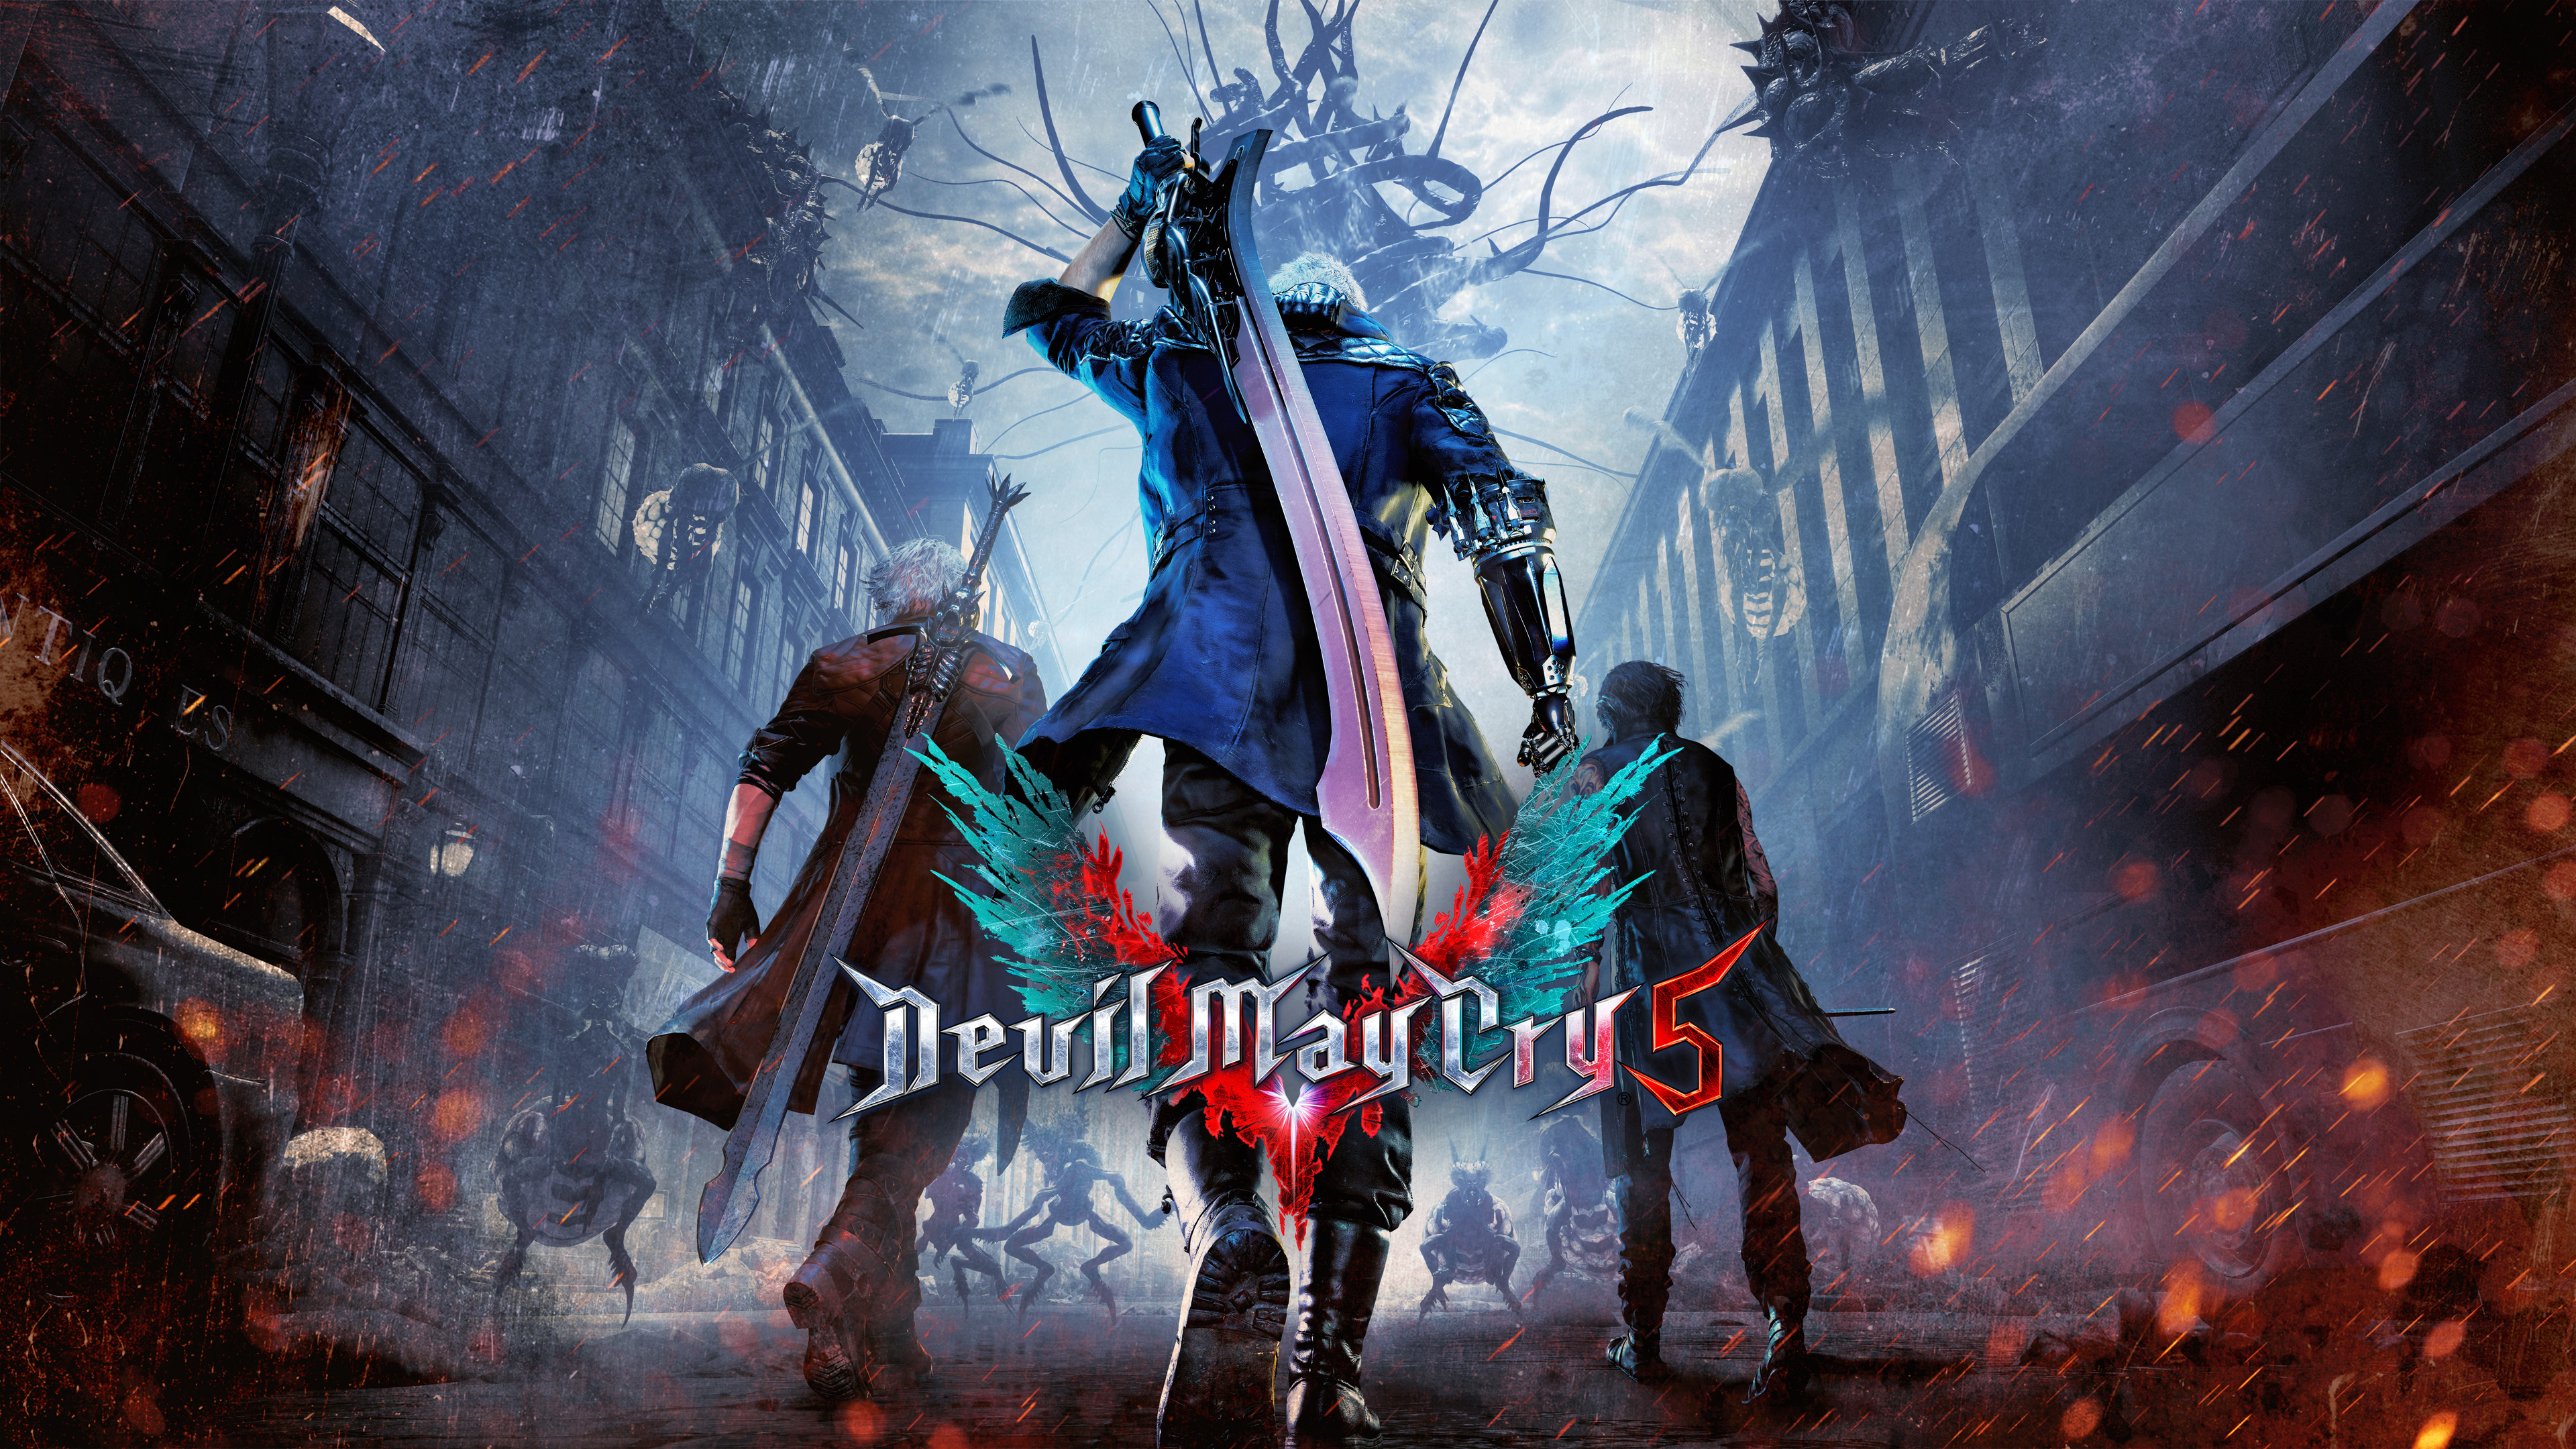 devil may cry 5 4k, hd games, 4k wallpapers, images, backgrounds